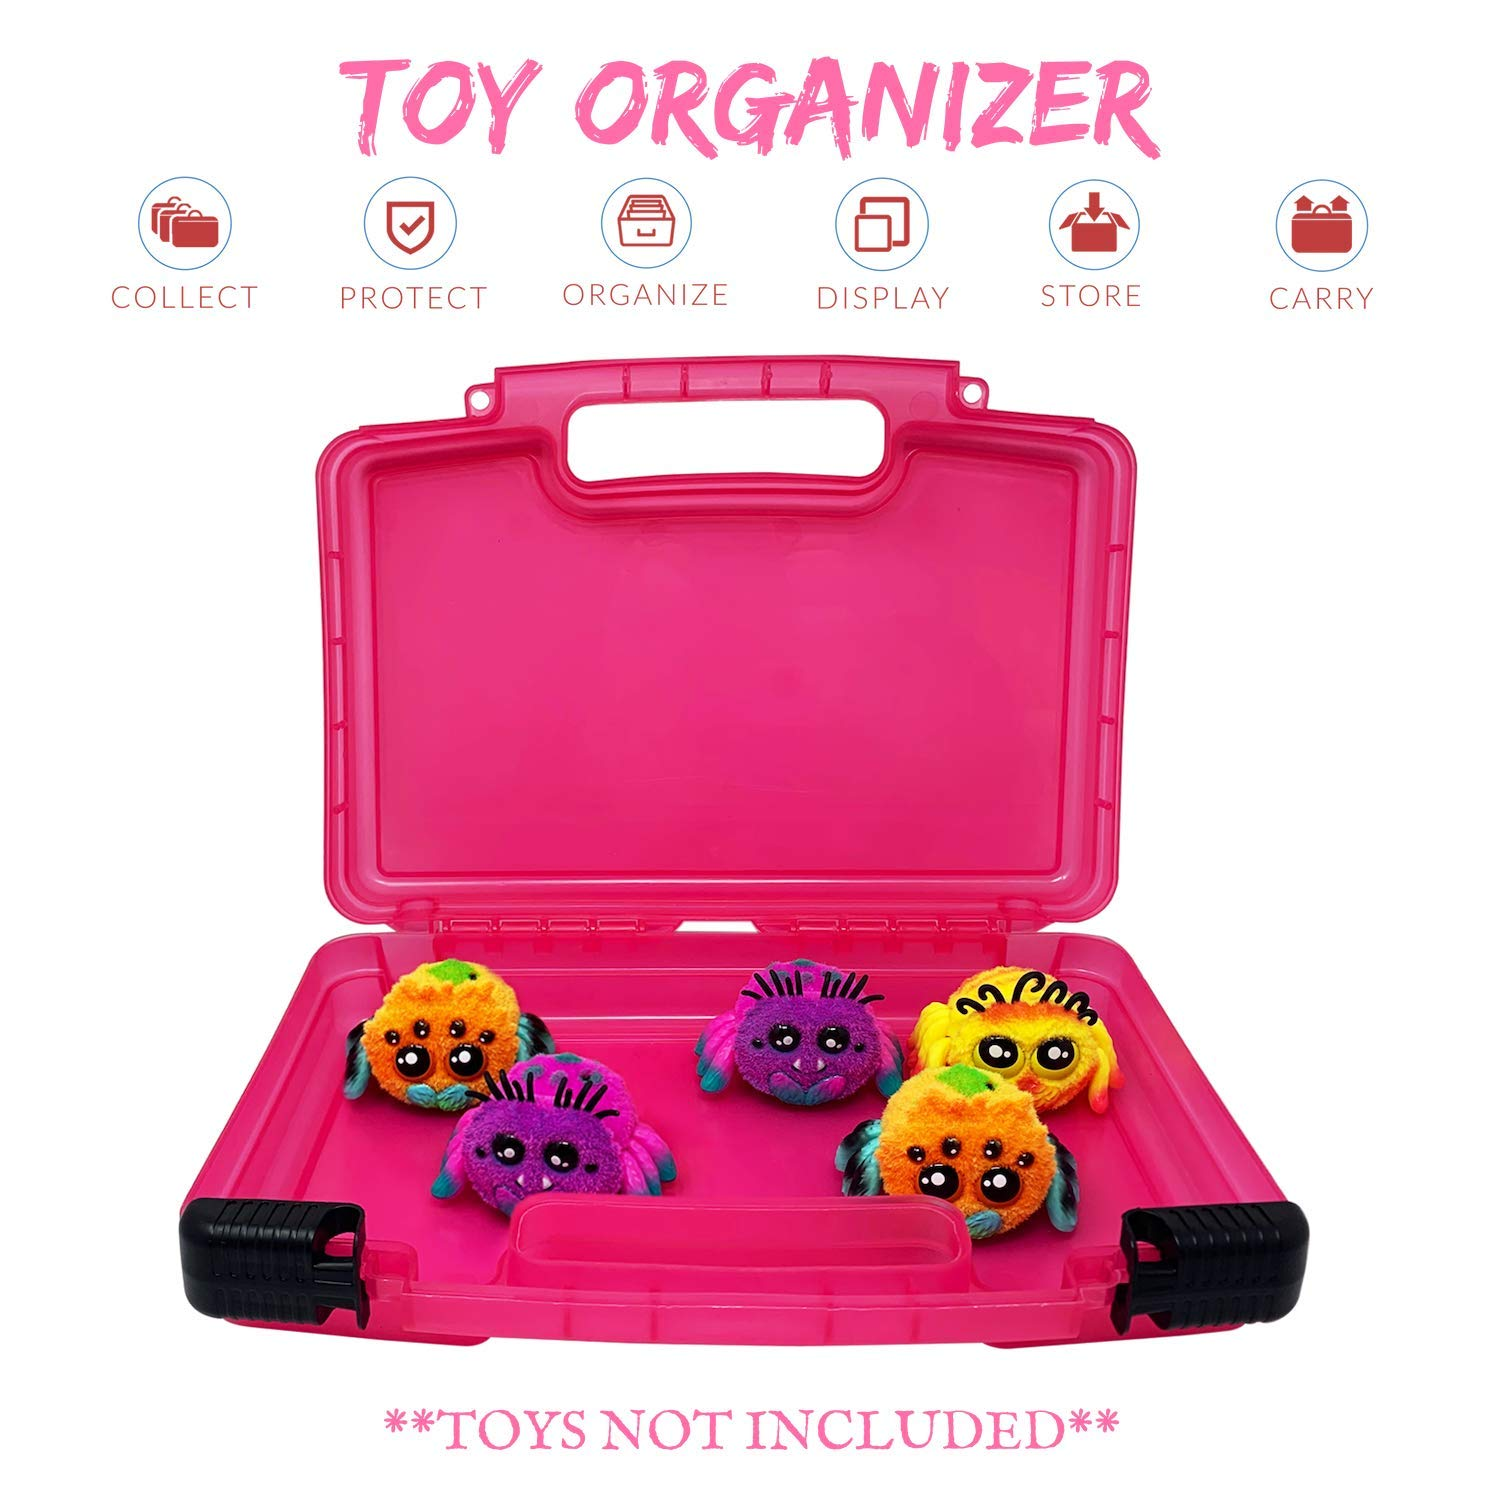 Compatible with Yellies Toy Spiders Life Made Better Toy Carrying Case Pink Toy Accessories Organizer Made by LMB